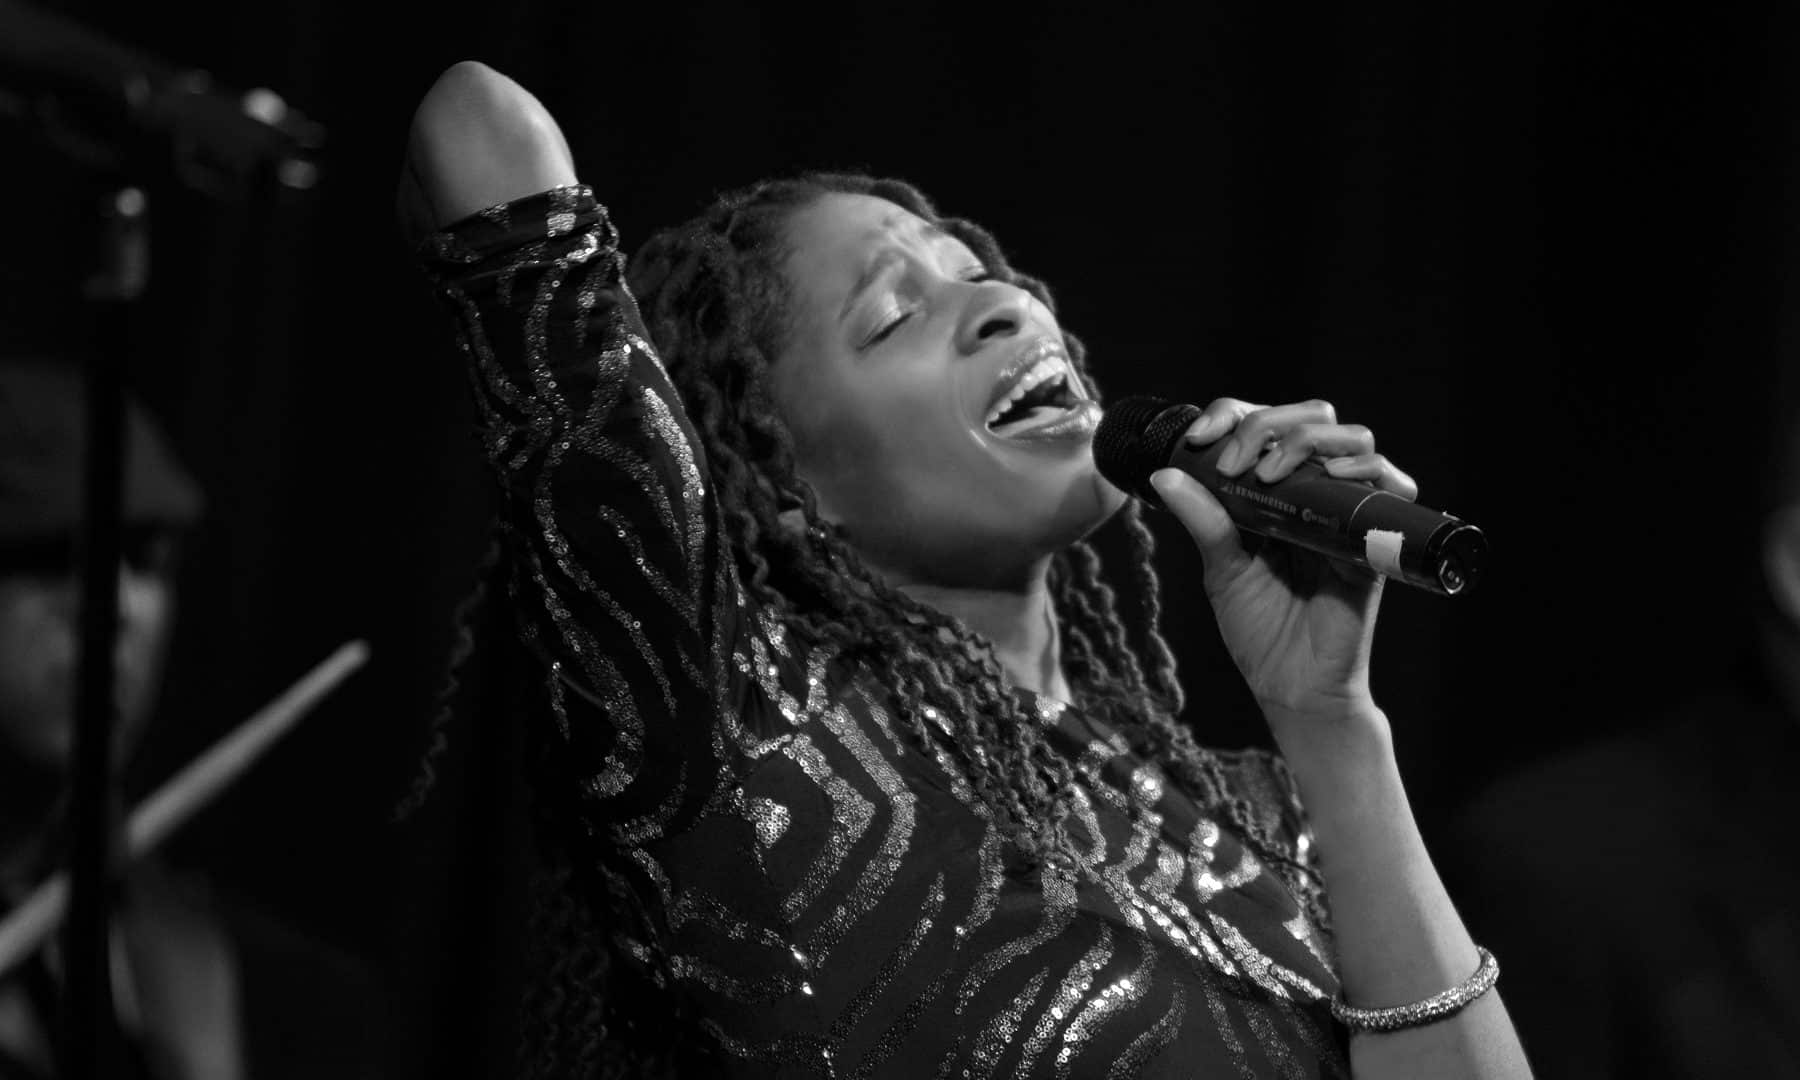 Soulful female vocalist entertains the audience